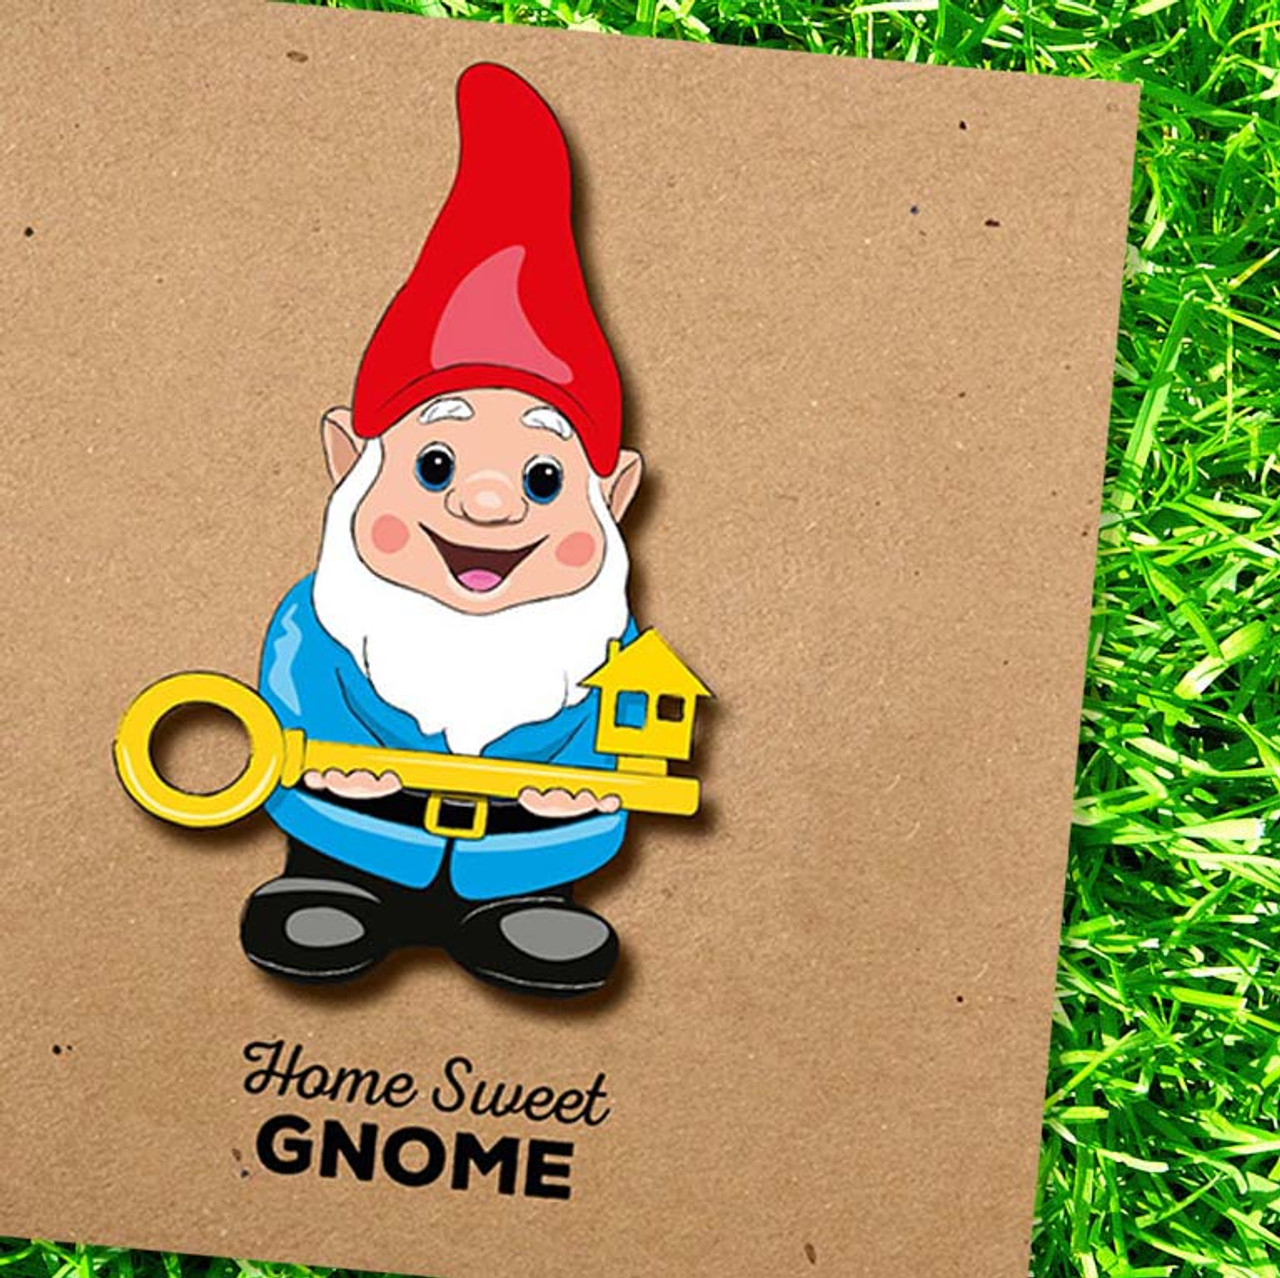 Gnome Greeting Card - Home Sweet Gnome by Tache